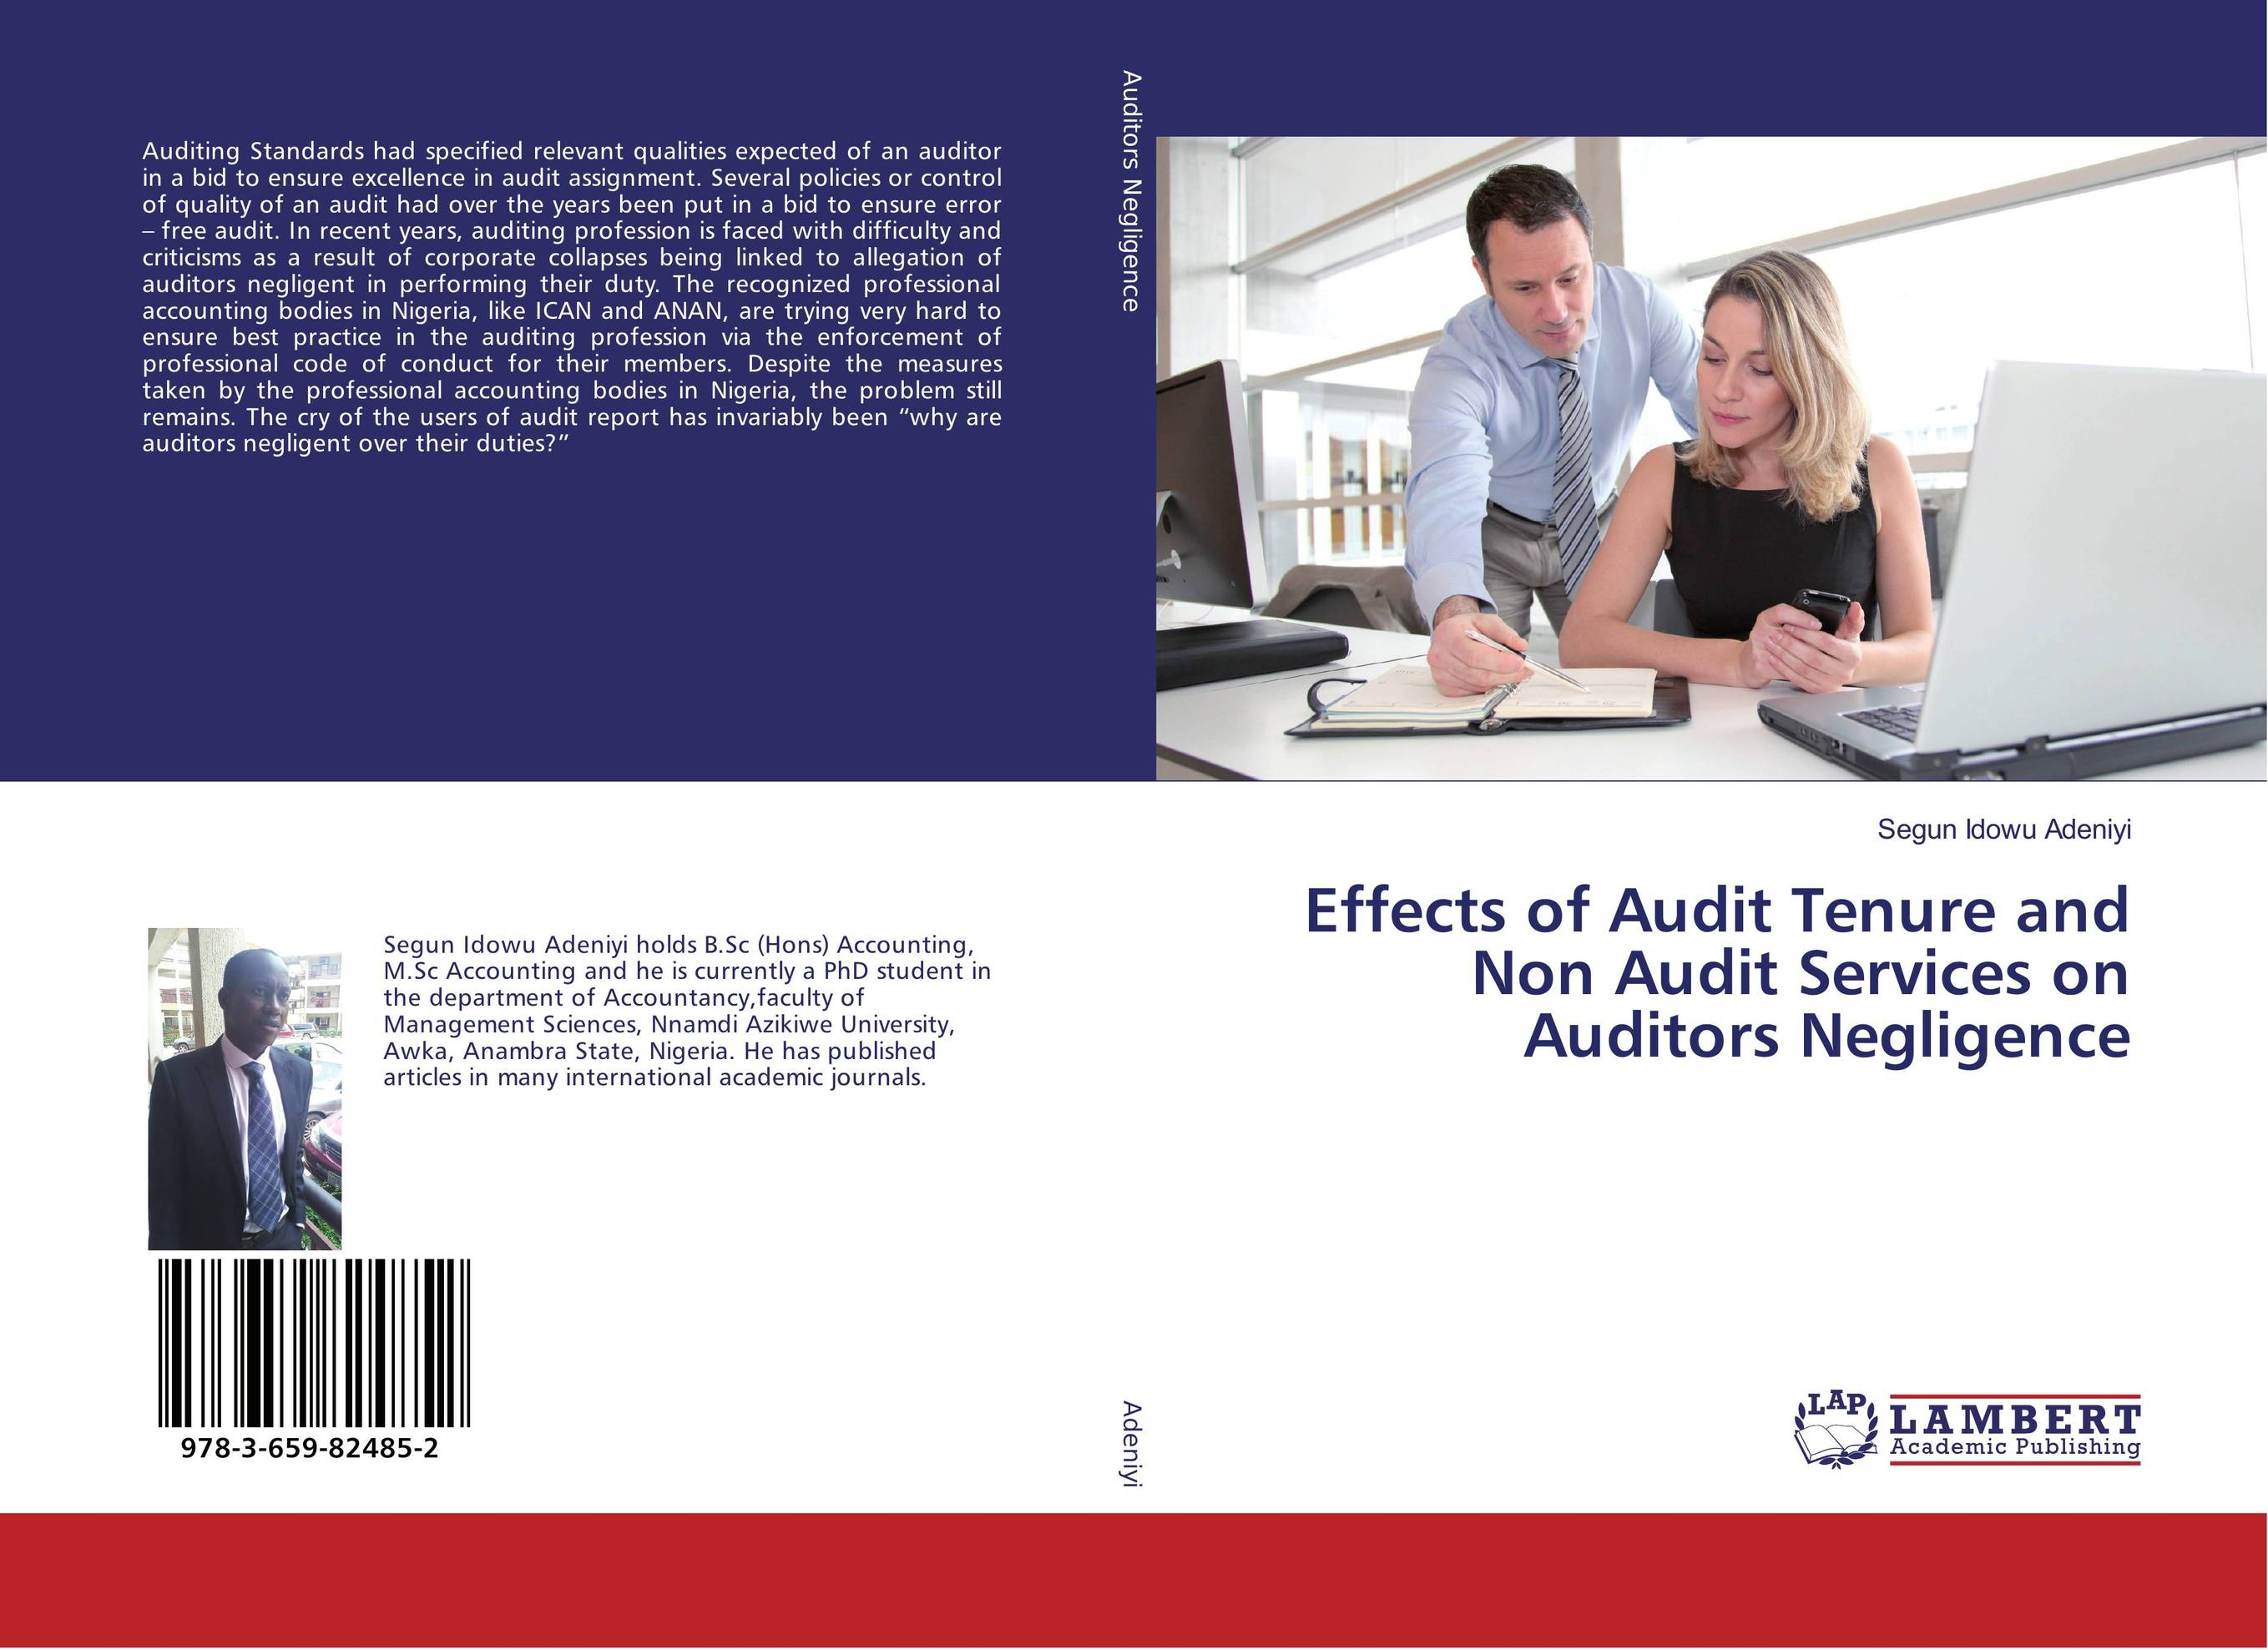 Effects of Audit Tenure and Non Audit Services on Auditors Negligence james paterson c lean auditing driving added value and efficiency in internal audit